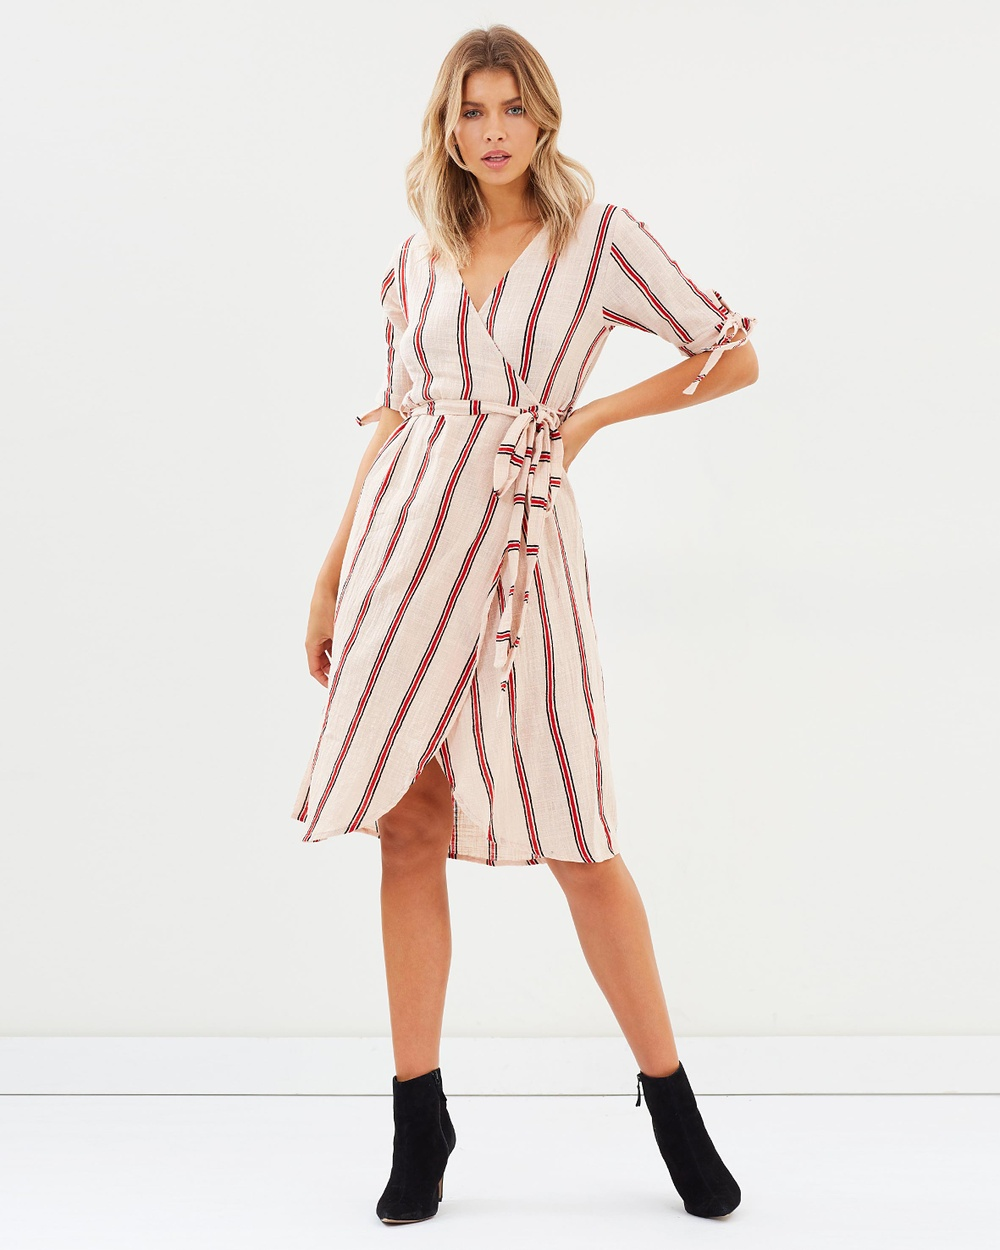 Rue Stiic Albany Wrap Dress Dresses Sand Red Stripe Albany Wrap Dress